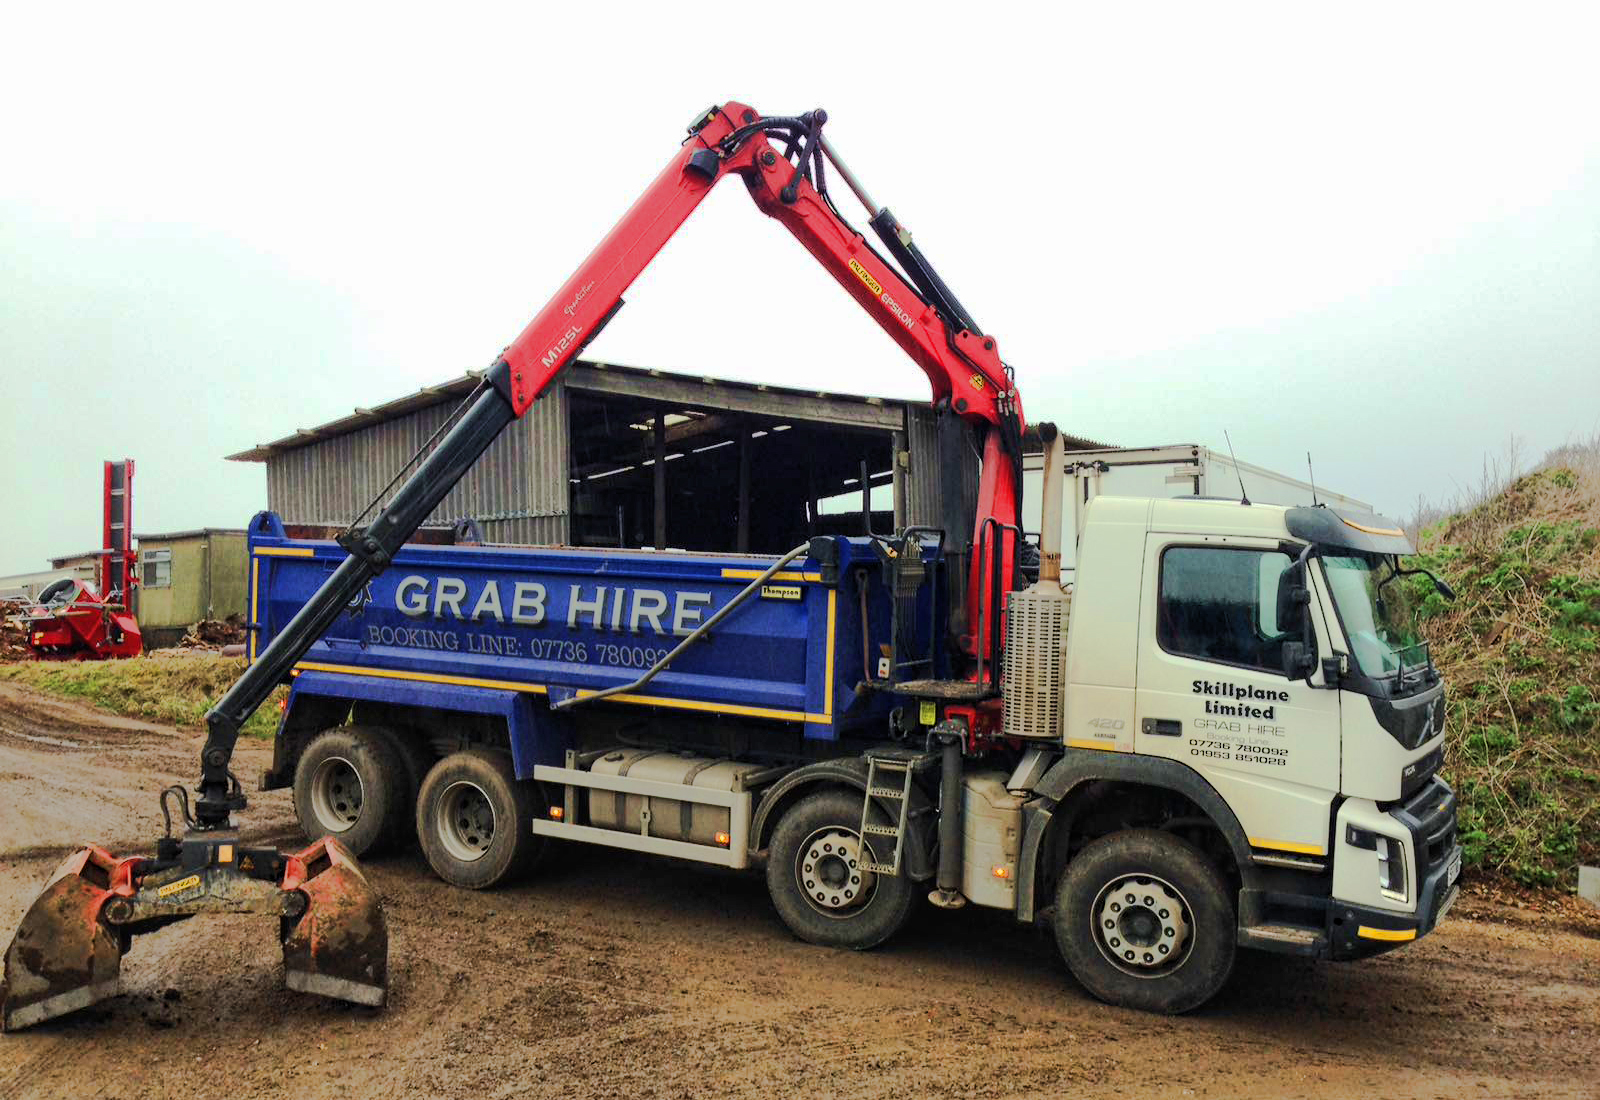 Skill plane grab hire lorry 2